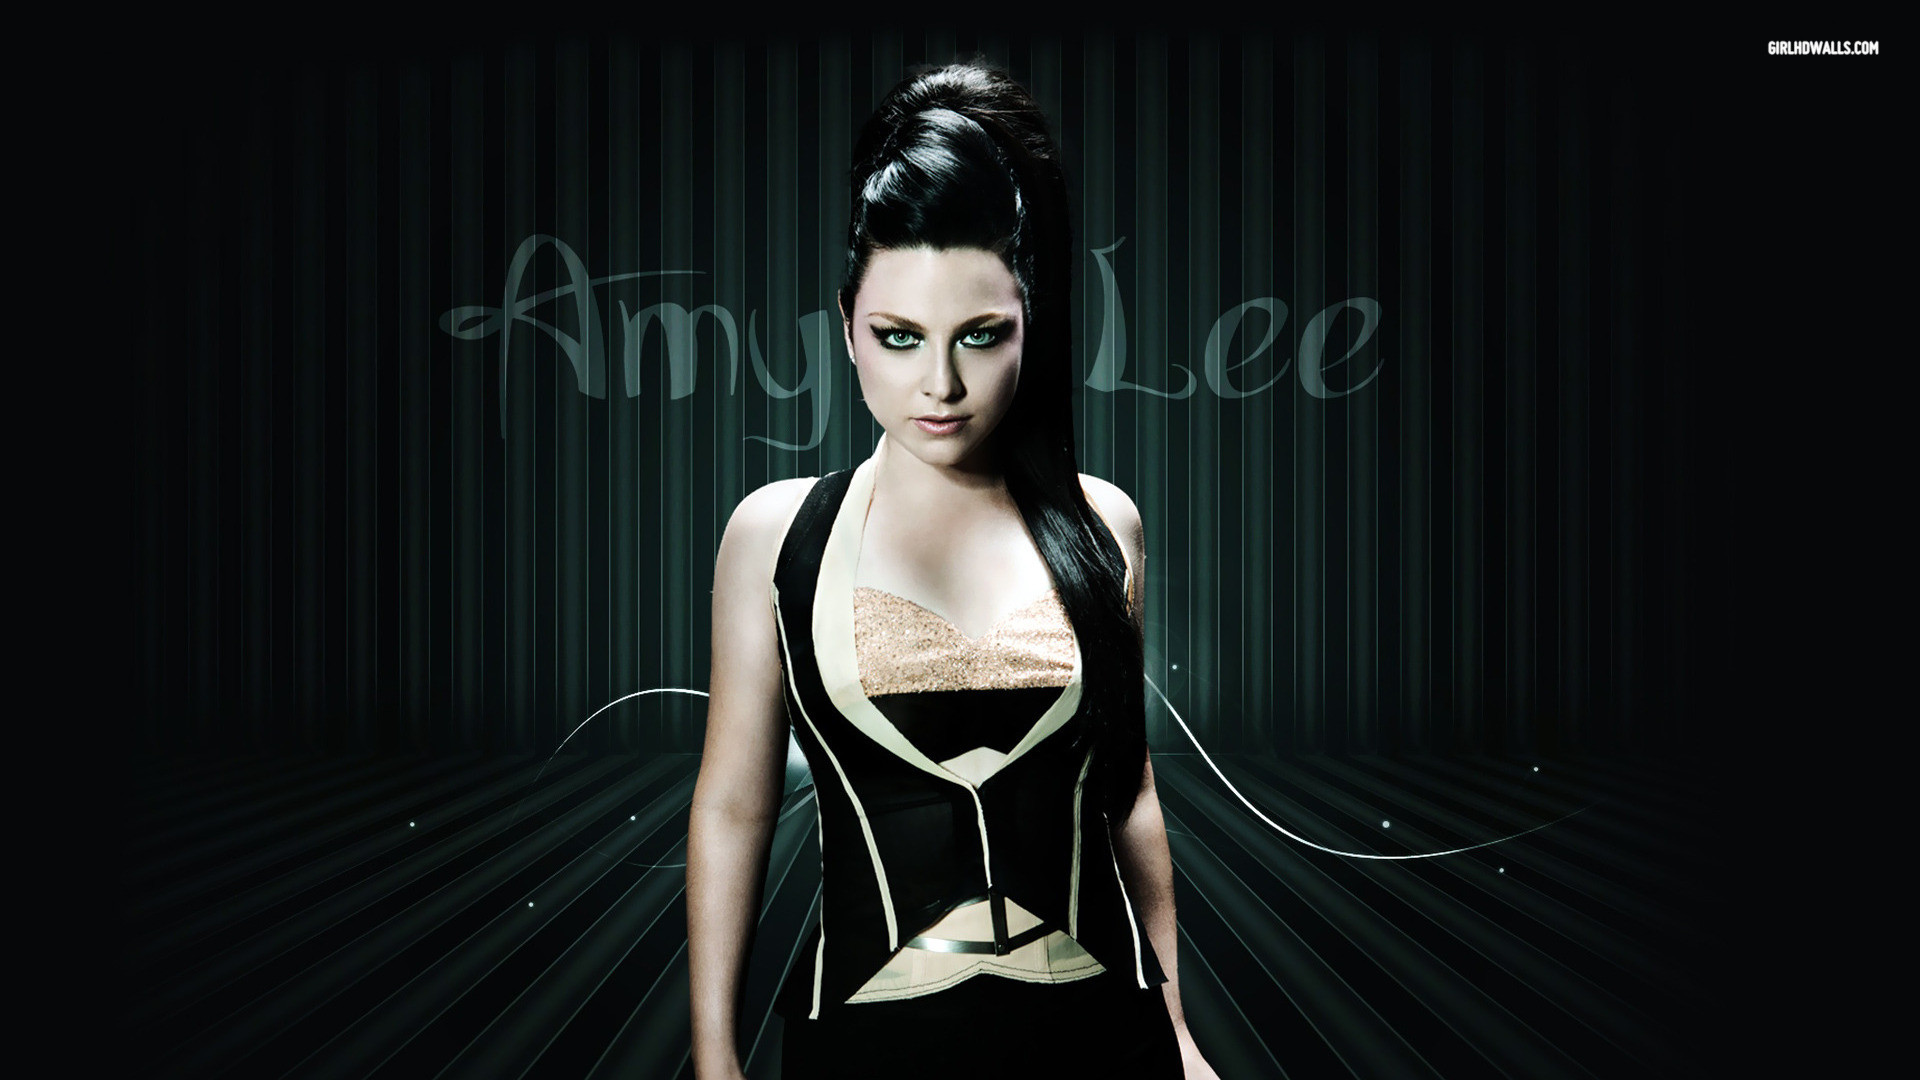 1920x1080 You have the possibility to download the archive with all wallpapers Amy  Lee HD absolutely free. We have a large database of wallpapers for your  desktop.